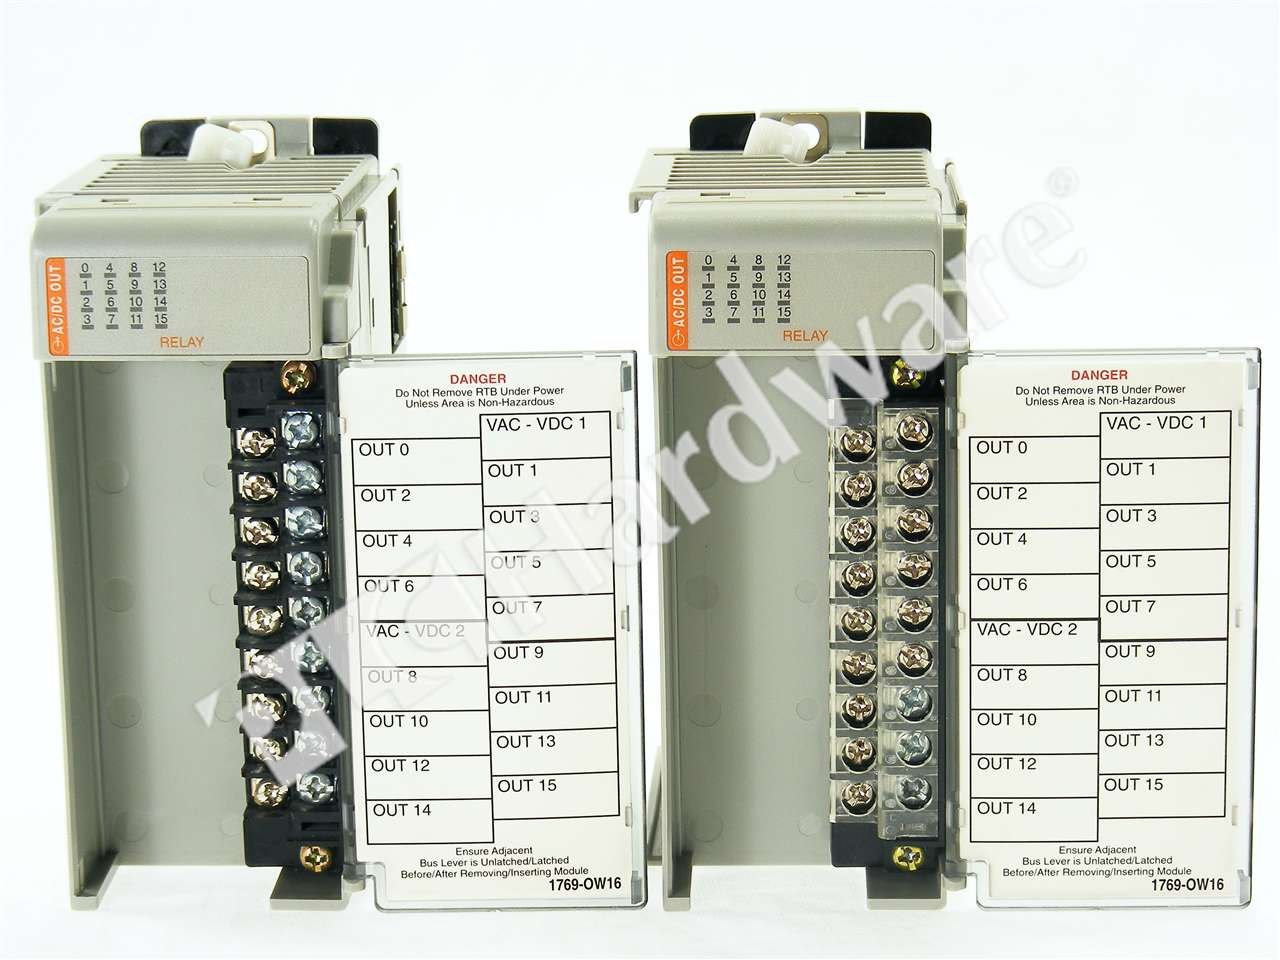 RA 1769 ow16 a UPP_3_10_06_16_21_08_b plc hardware allen bradley 1769 ow16 16 point ac dc relay output 1769-ow16 wiring diagram at gsmportal.co